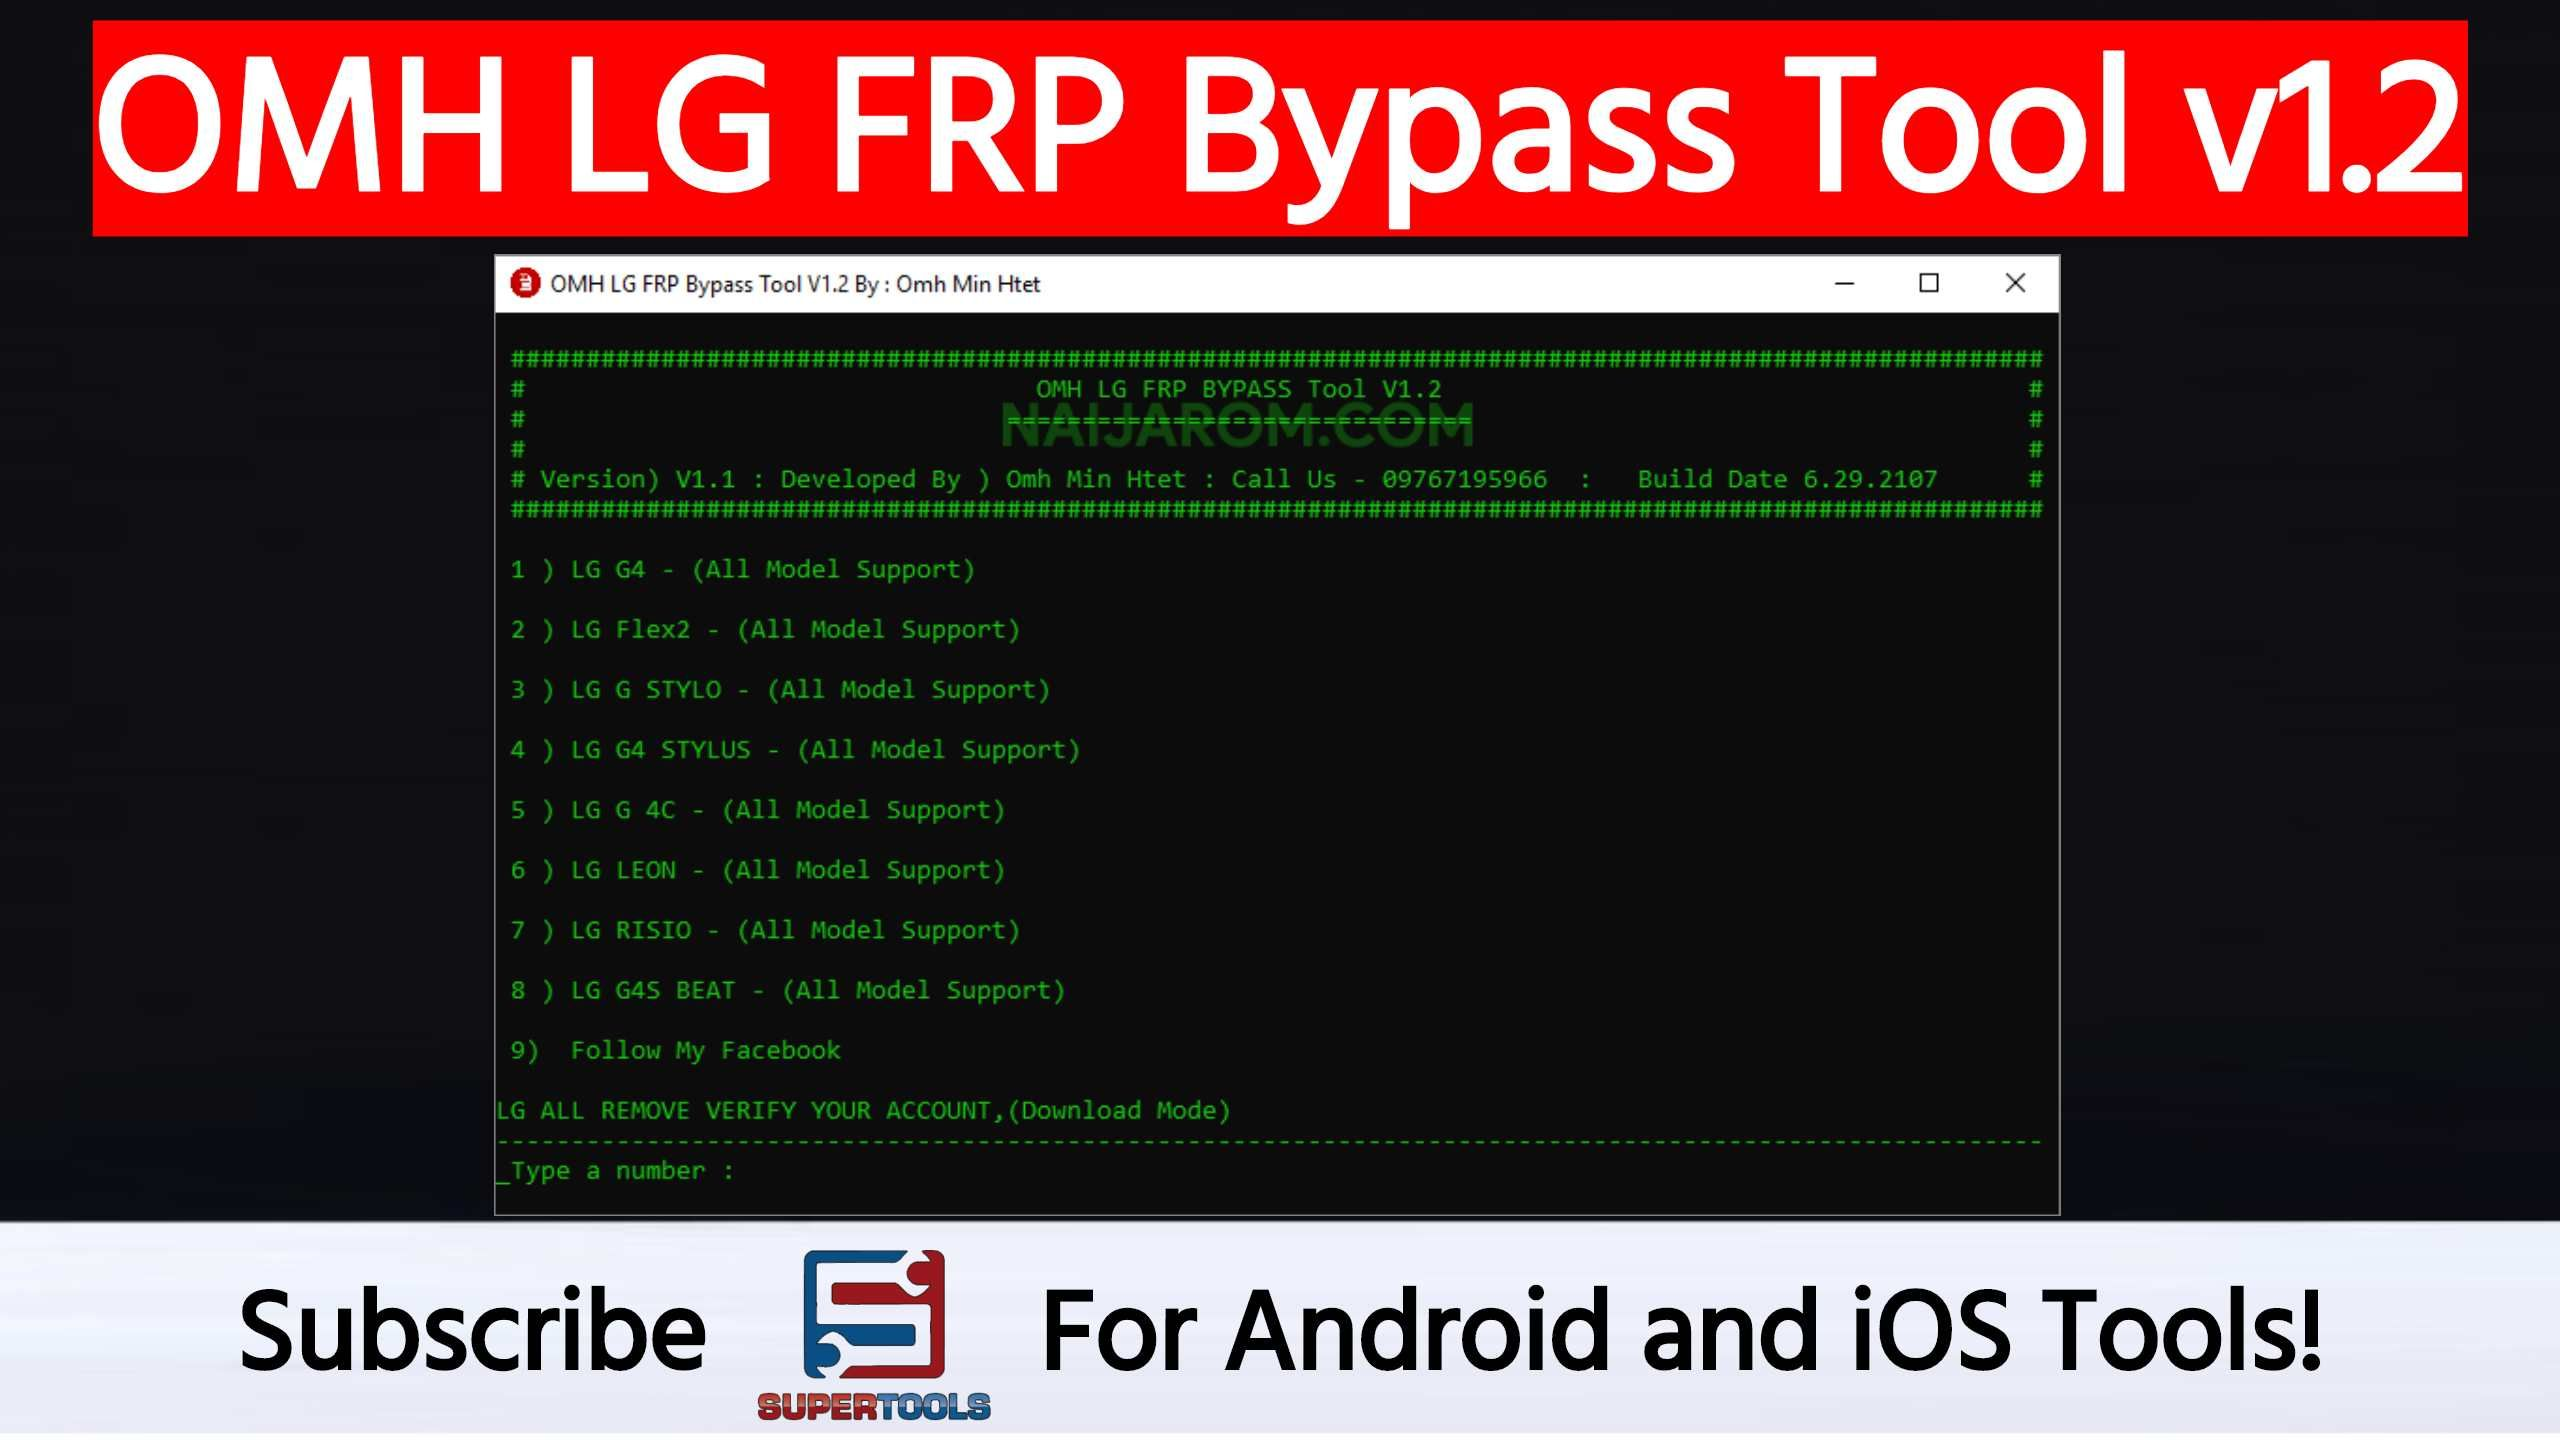 OMH LG FRP Bypass Tool v1 2 helps you to remove or bypass the FRP